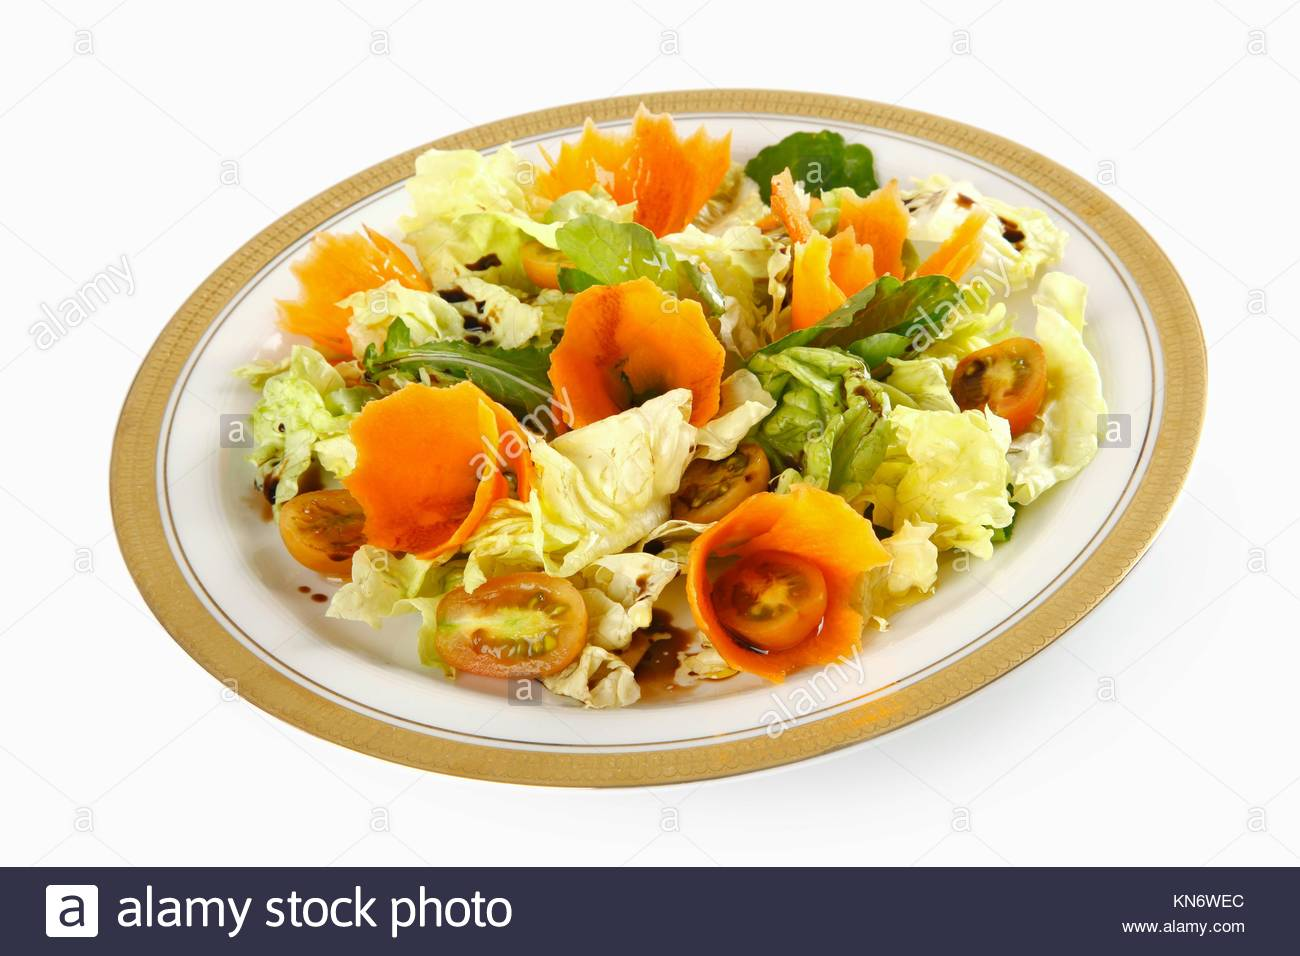 Fresh vegetables: carrot and lettuce; healthy eating and dietary. - Stock Image